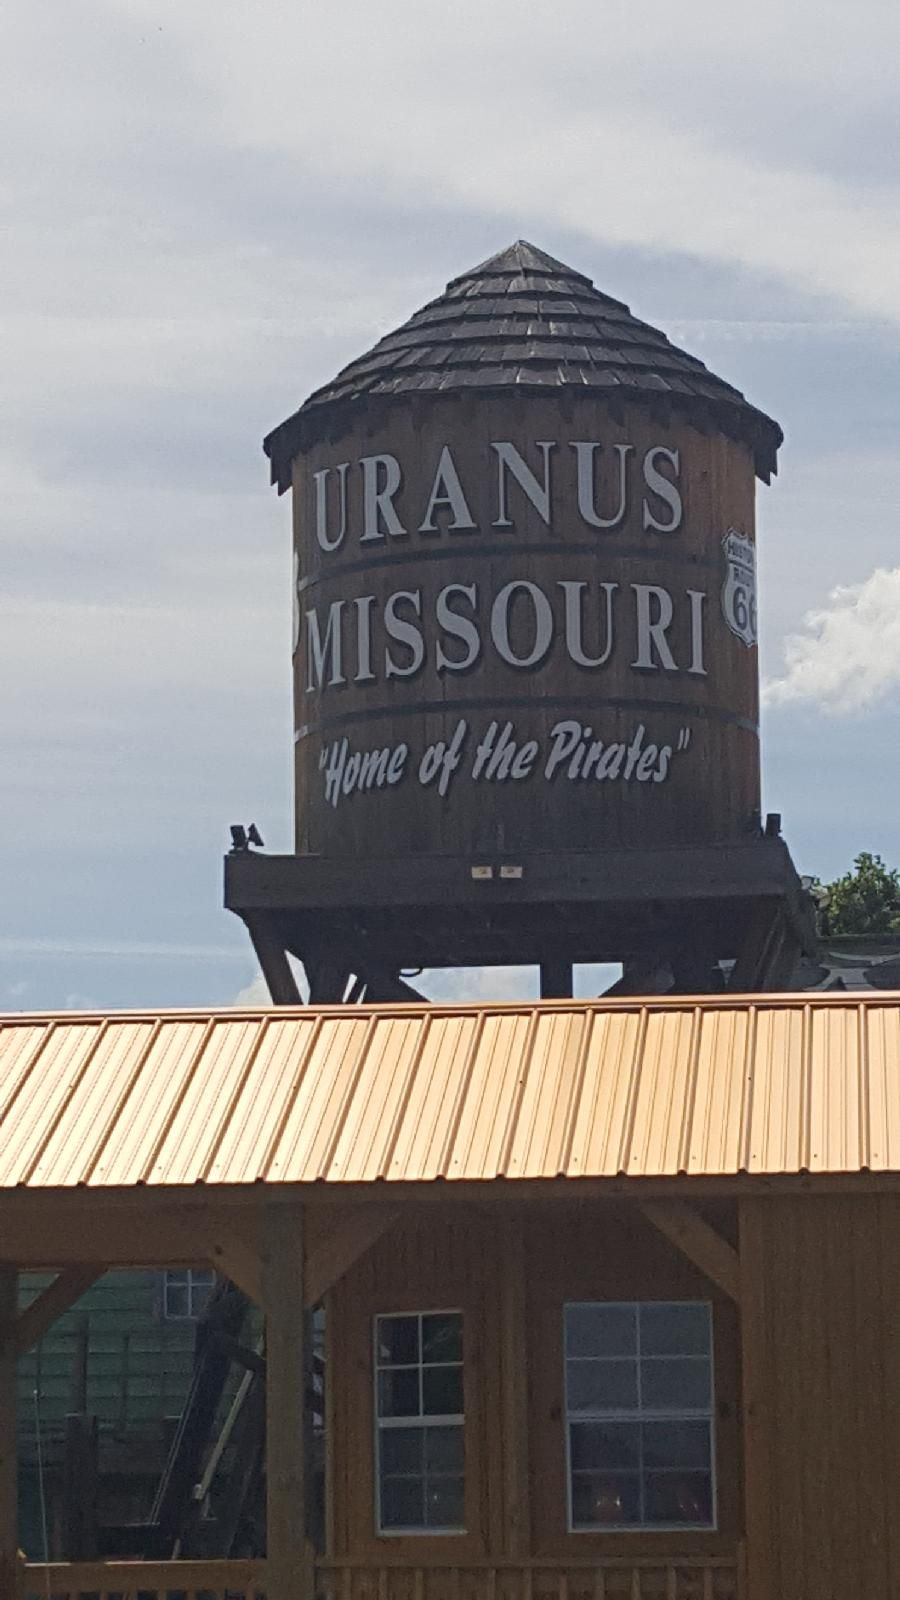 5 - Water tower of Uranus Missouri, try not to laugh.